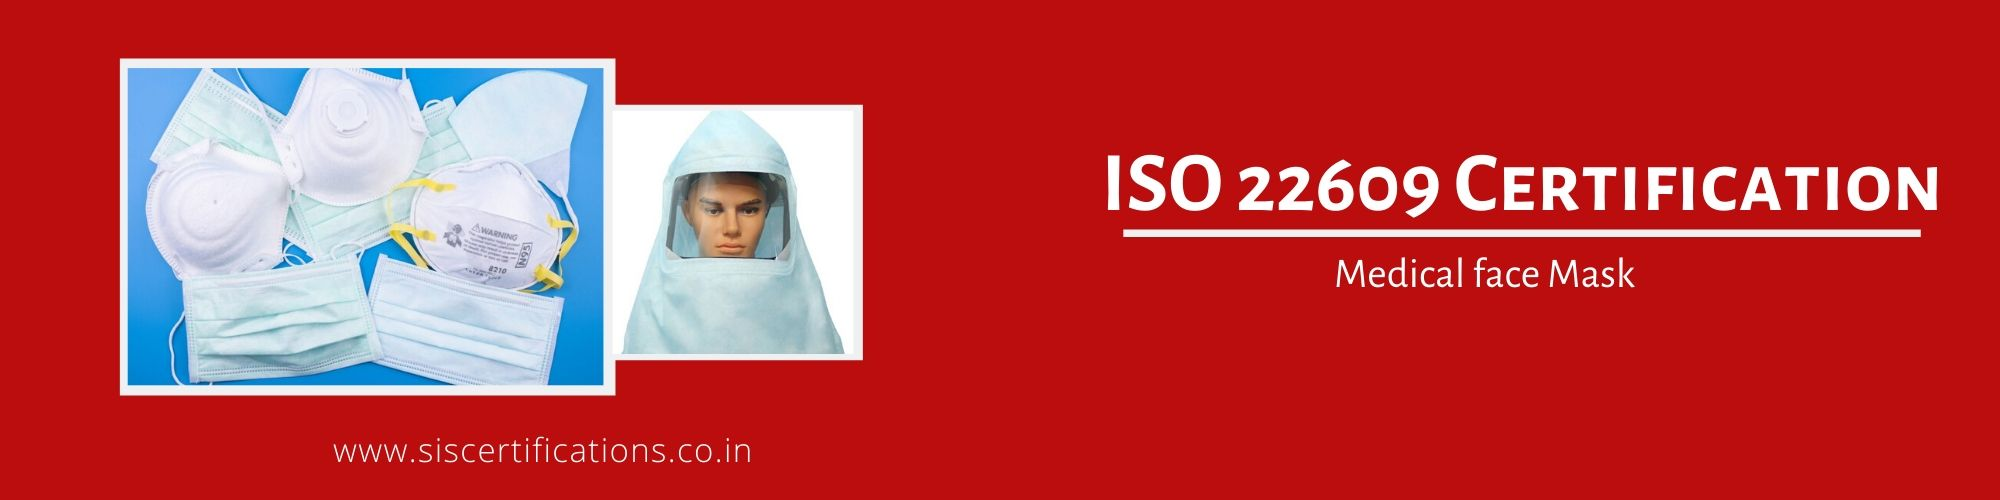 ISO 22609 Certification